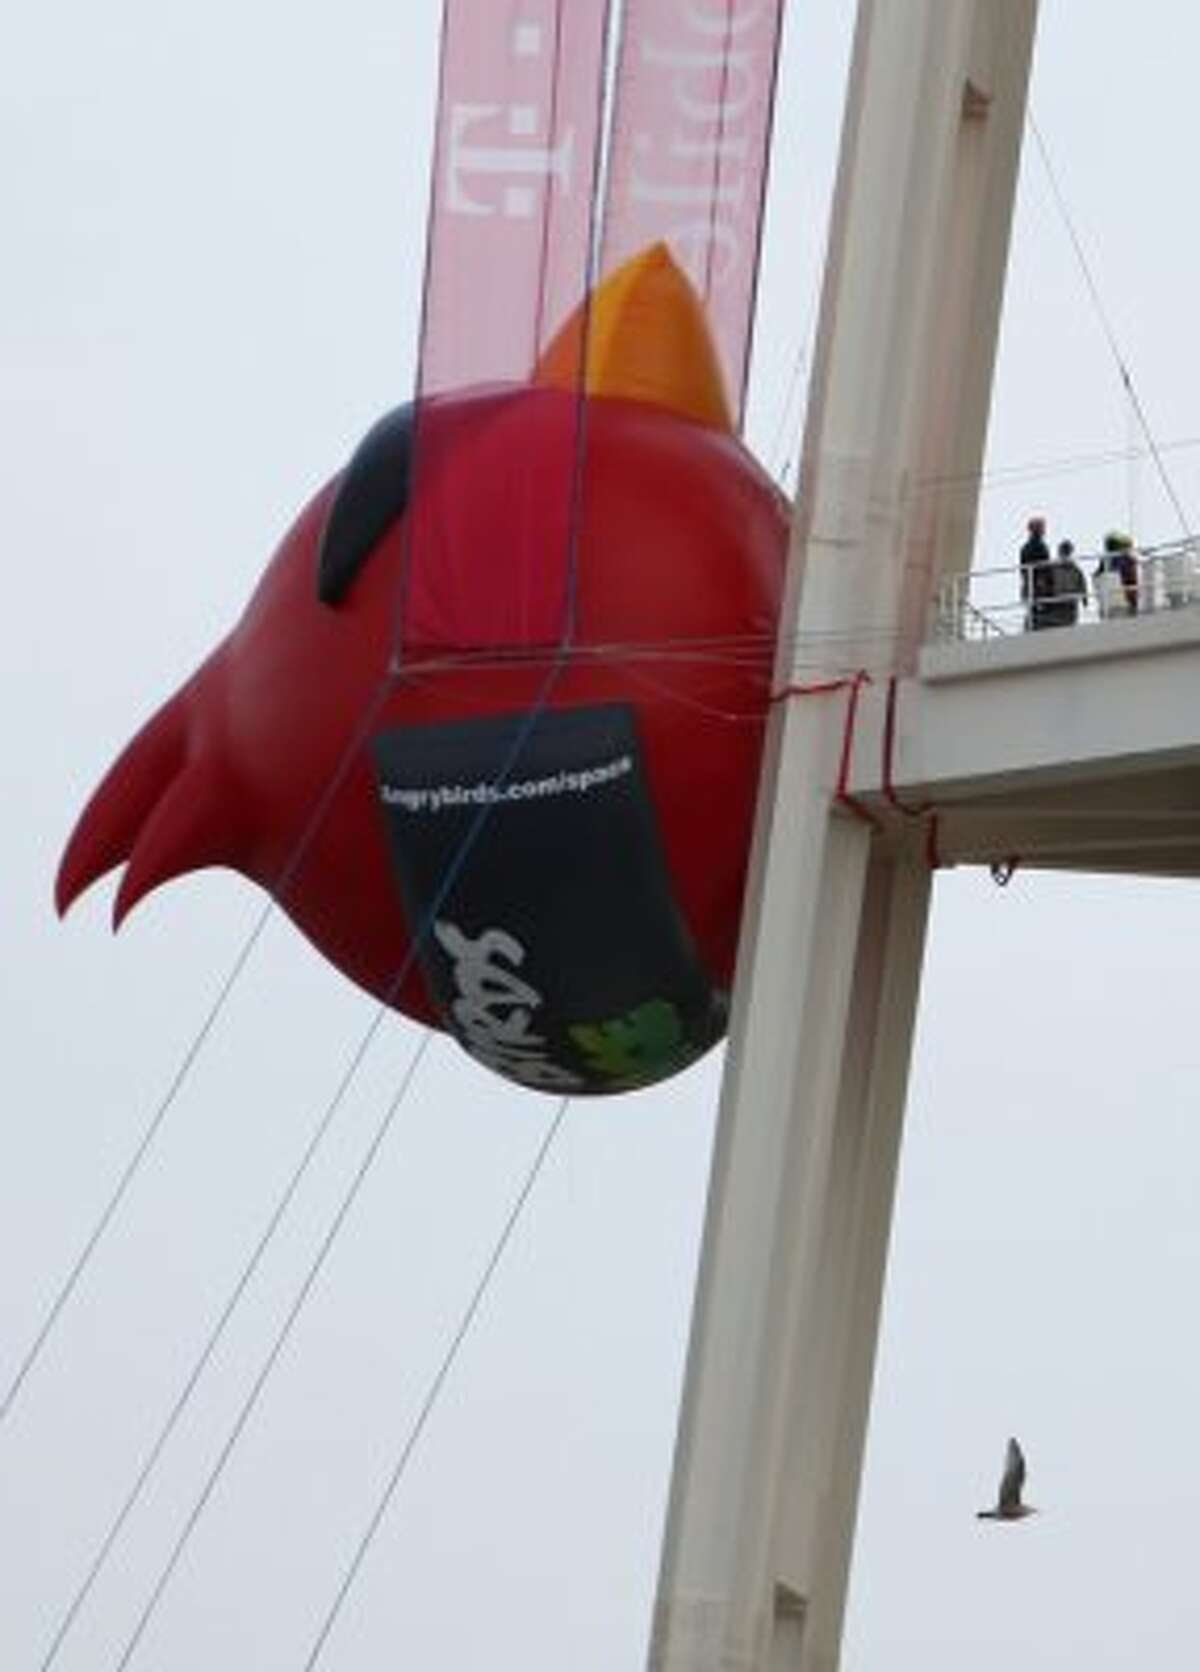 A red 'Angry Bird' is attached to the side of Seattle's Space Needle on Thursday, March 22, 2012 as part of a promotion for the new Angry Birds Space. The Seattle icon was transformed into a giant 'slingshot' for the promotion.